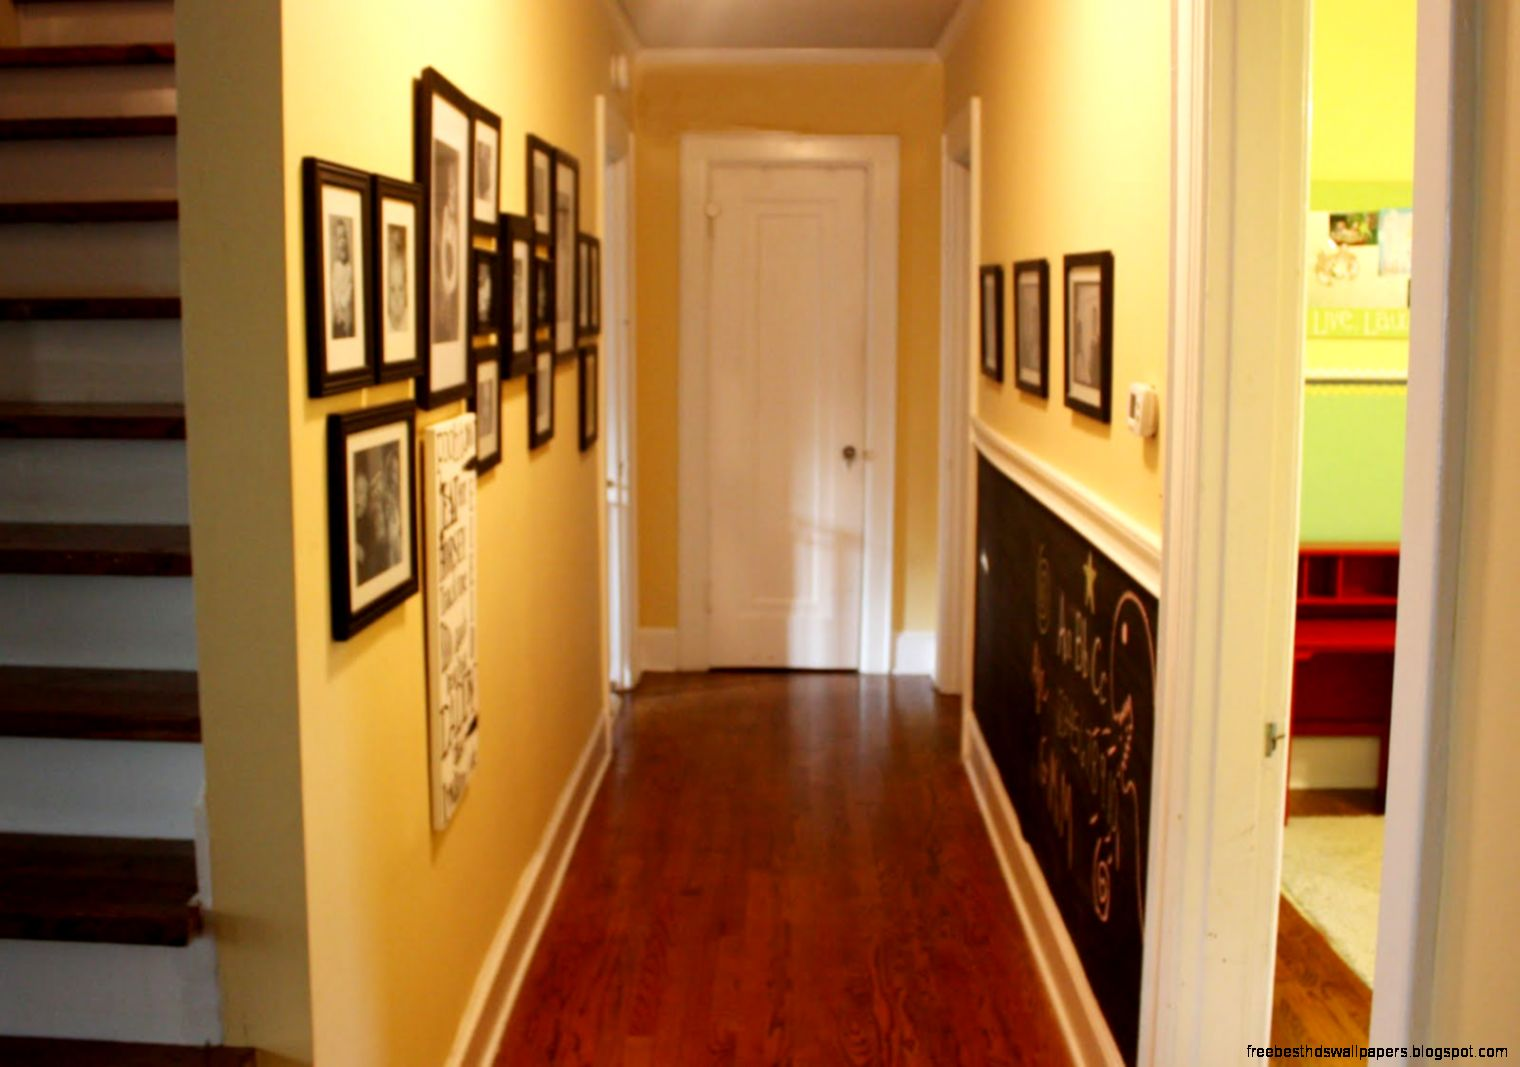 Wall Decor For Hallway : Hallway wall ideas free best hd wallpapers